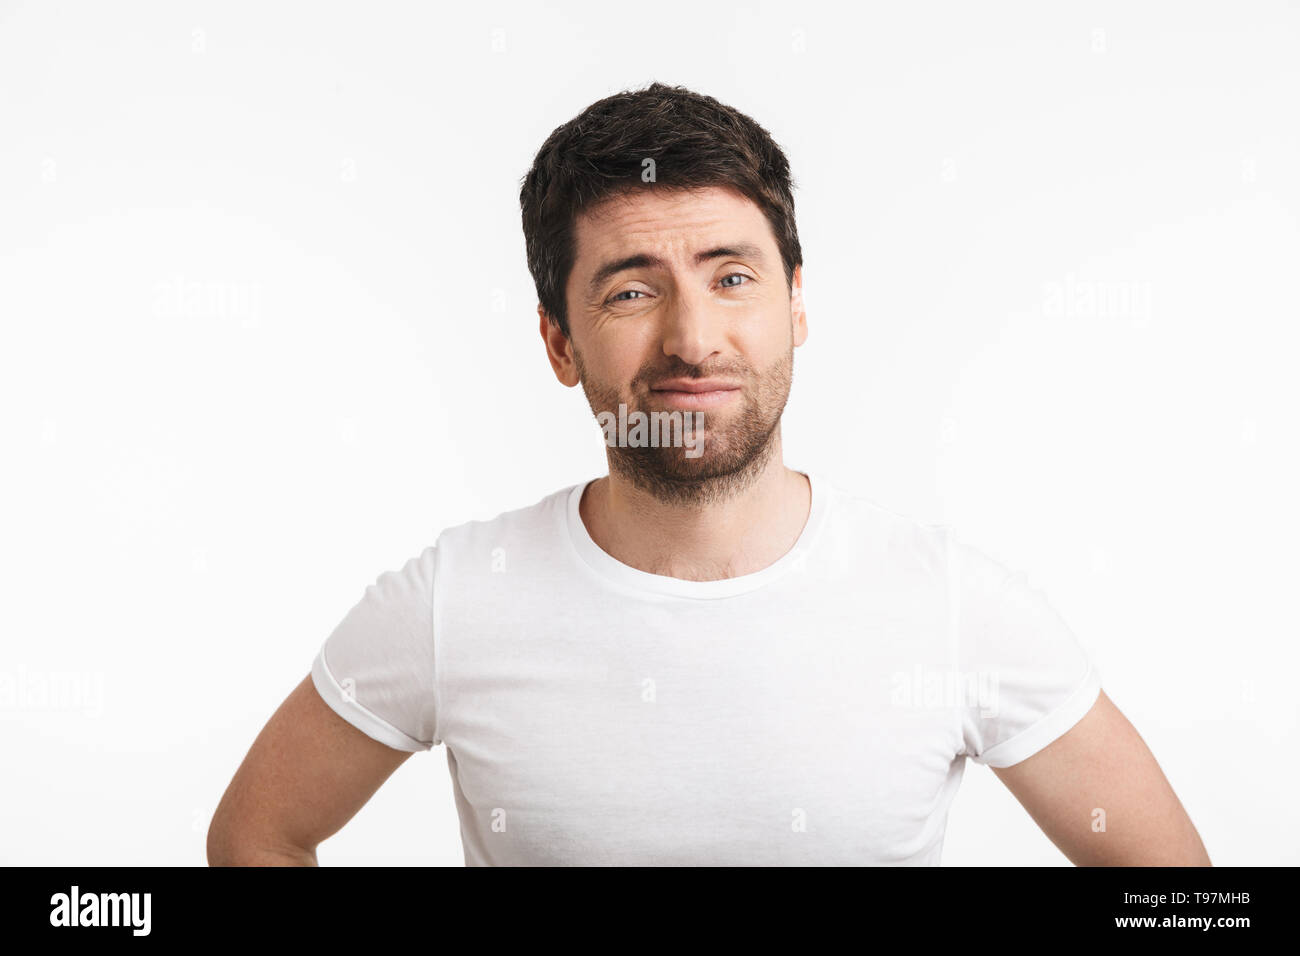 Image of unhappy man 30s with bristle in casual t-shirt frowning and grimacing isolated over white background - Stock Image